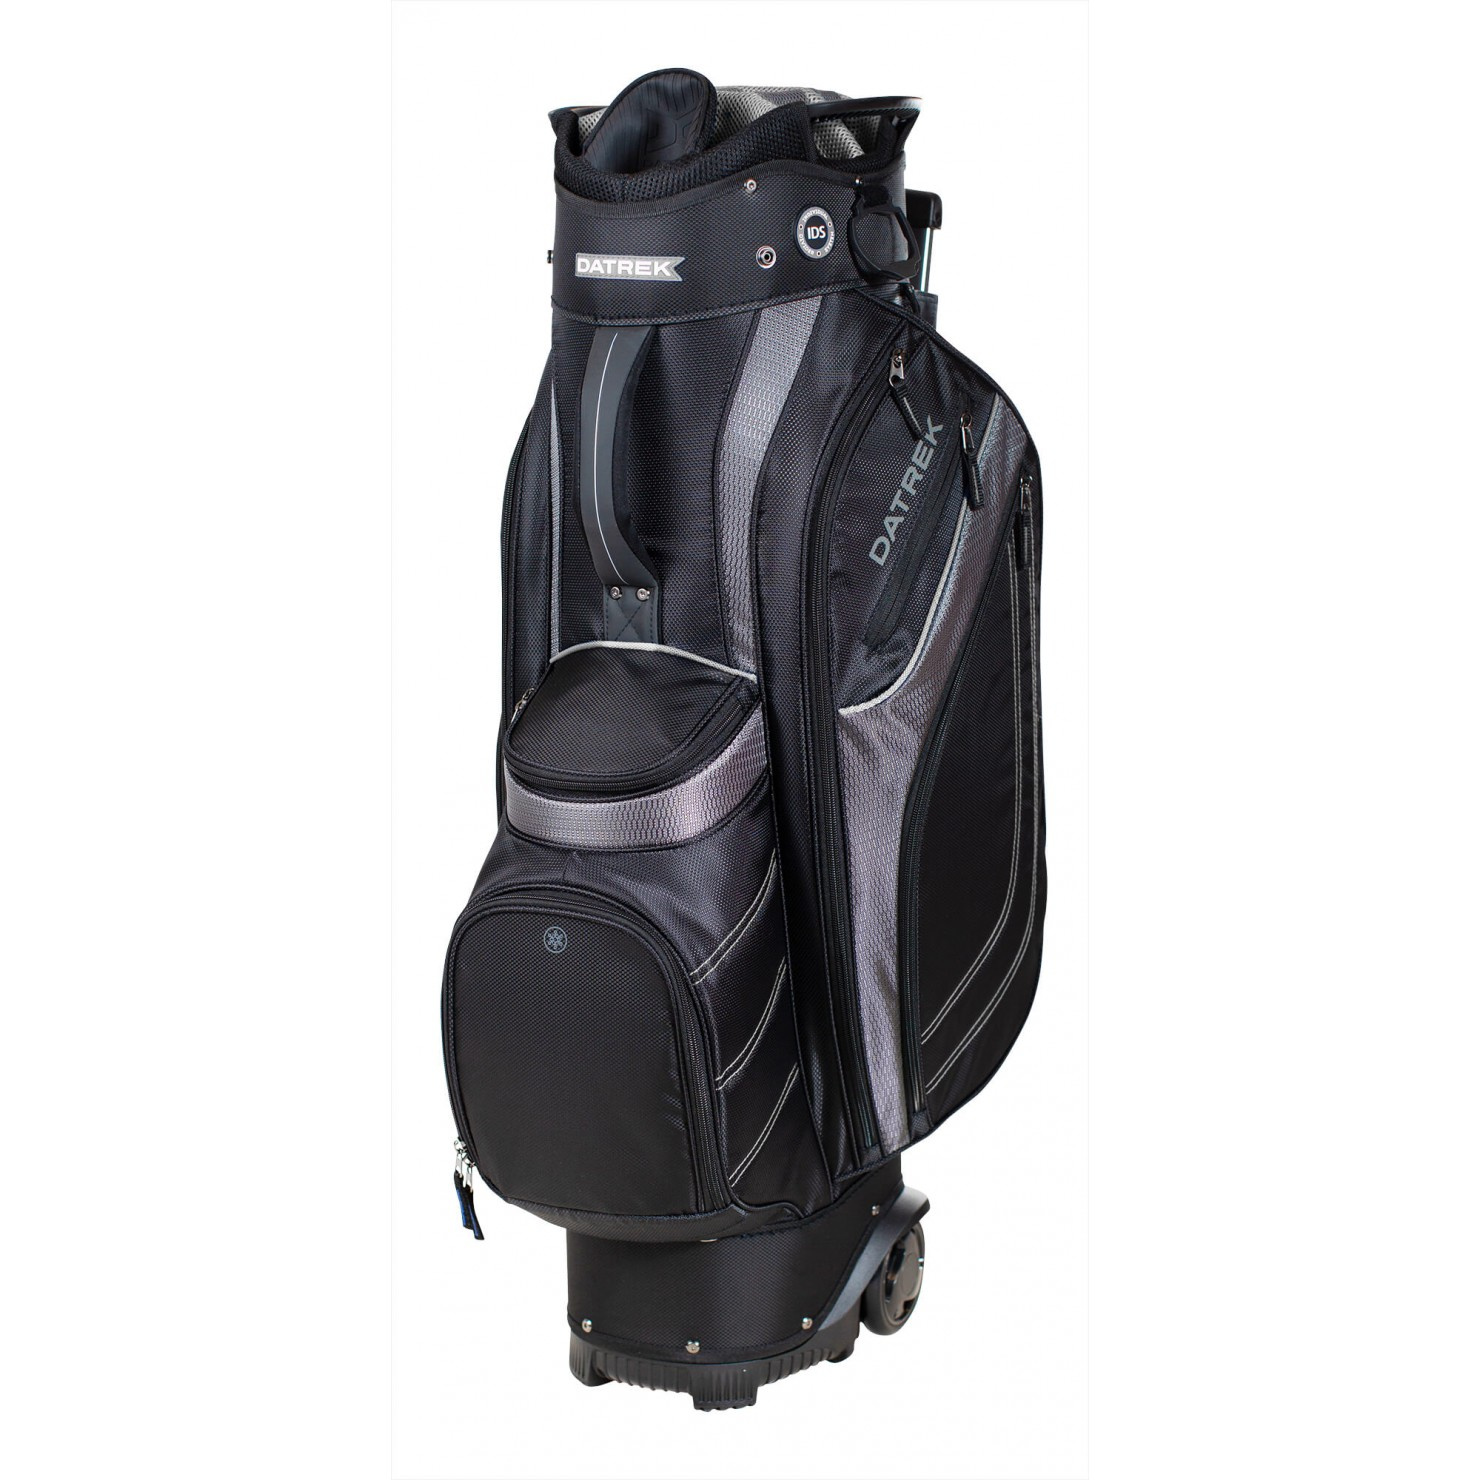 Datrek Transit Wheeled Cart Bag